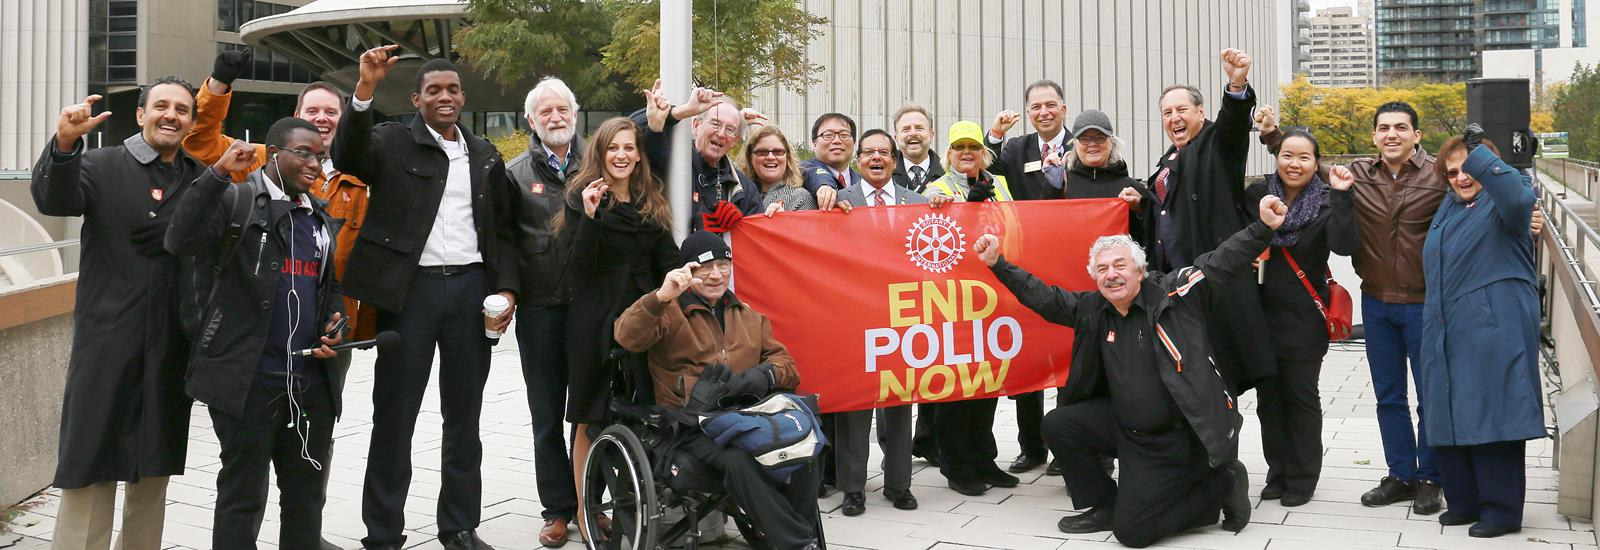 We participate in large international projects like the global eradication of polio